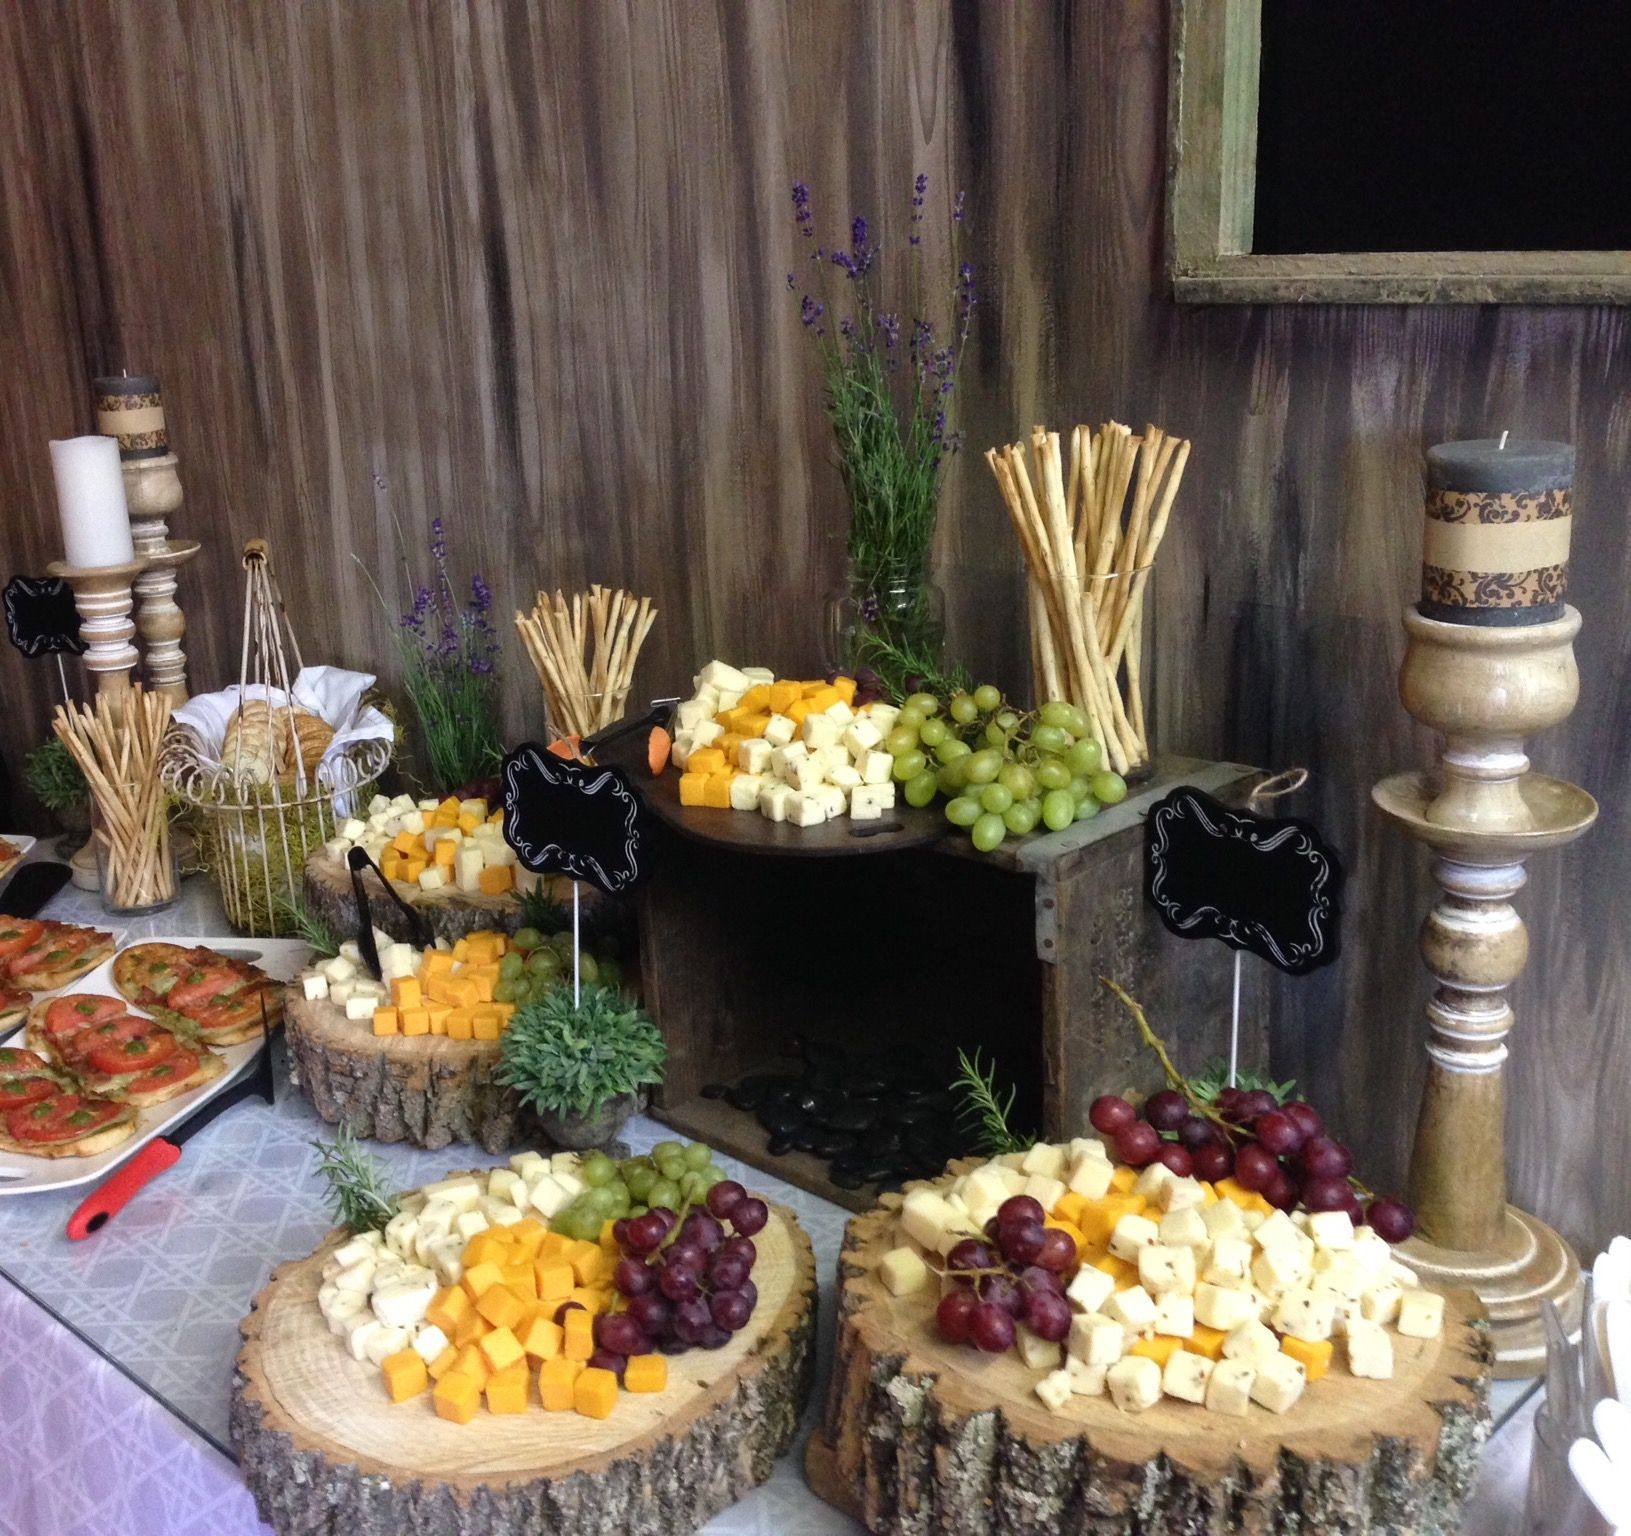 Wedding Food Tables: Appetizer Table For A Small Wedding Reception